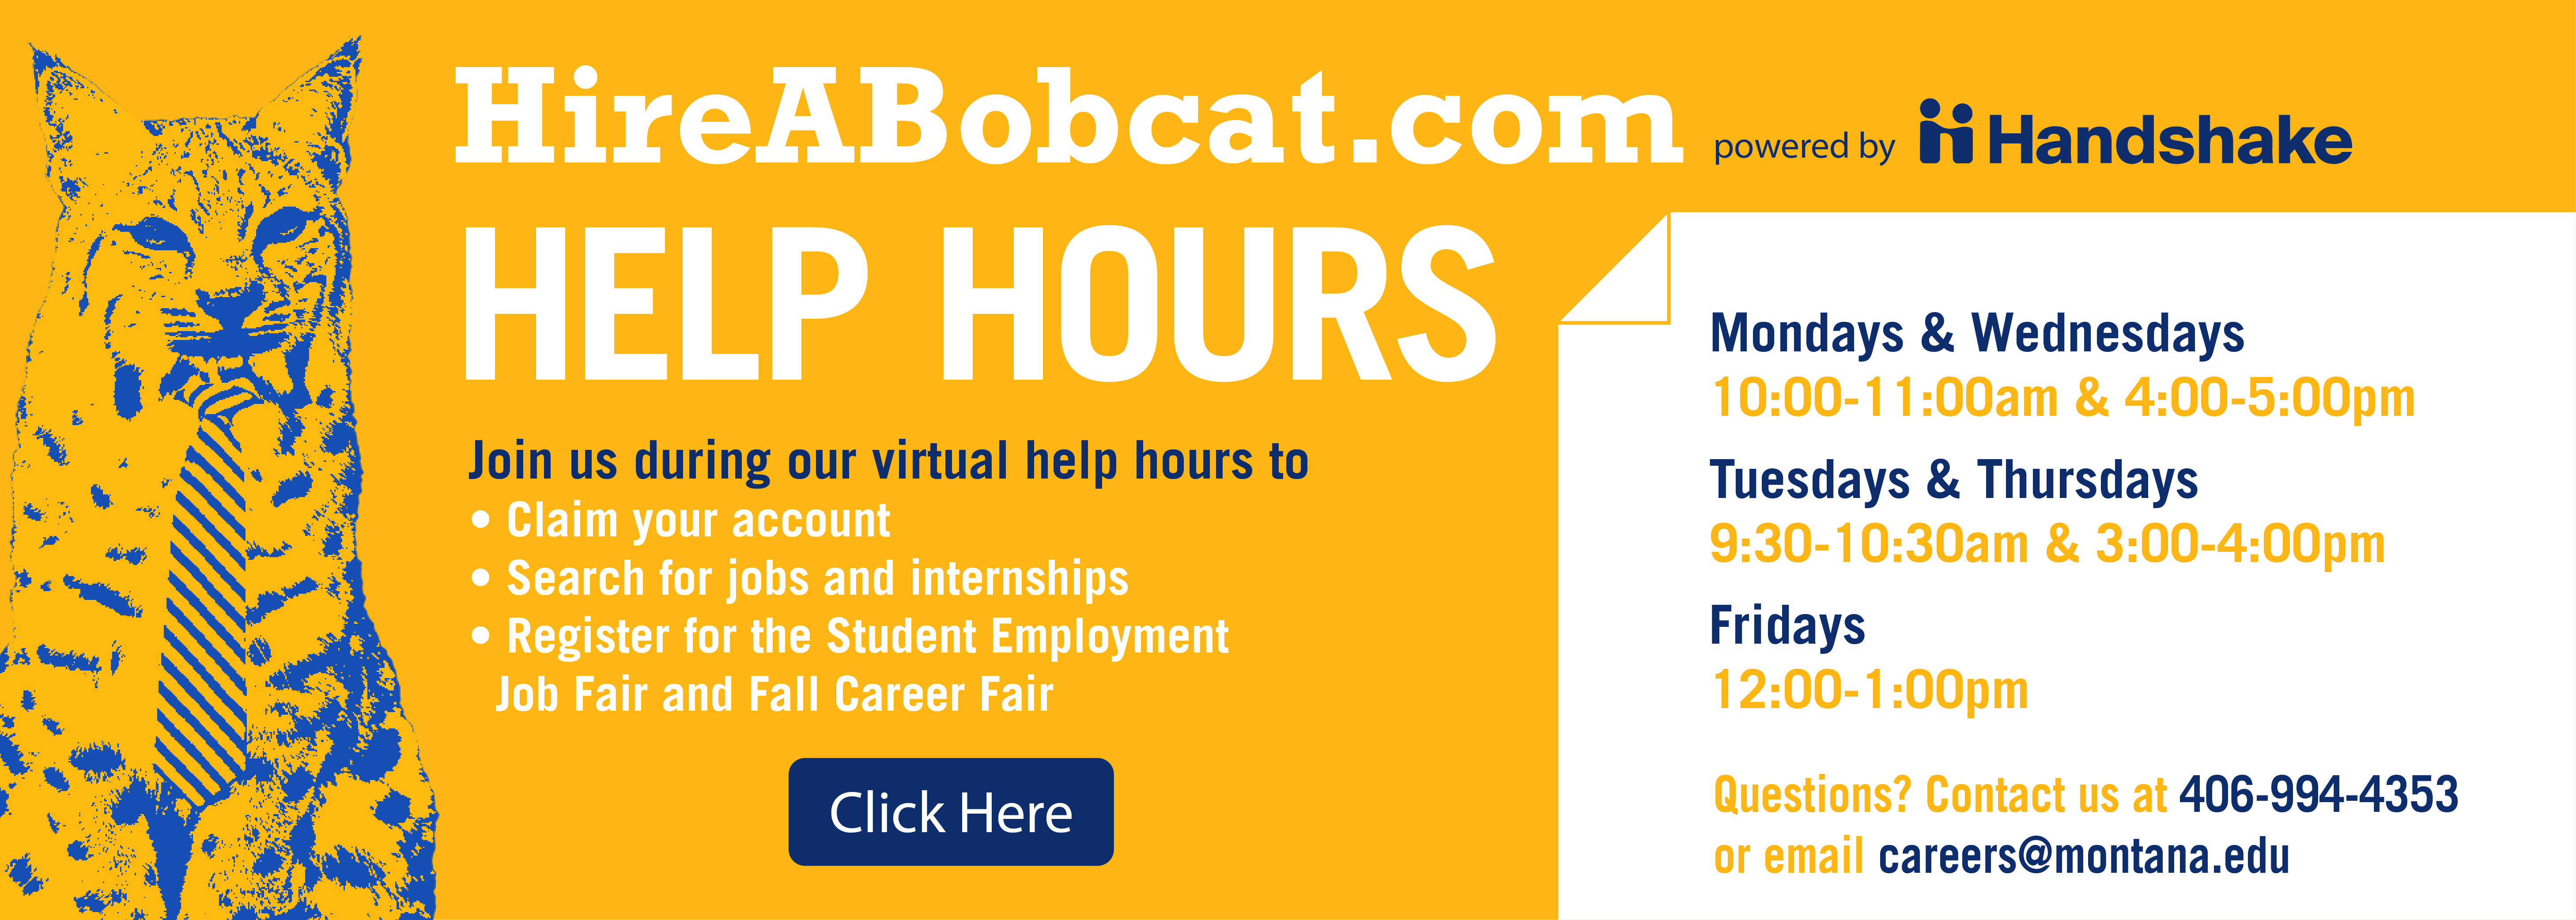 Hireabobcat.com powered by handshake. Help hours. Join us during our virtual help hours to  • Claim your account • Search for jobs and internships  • Register for the Student Employment    Job Fair and Fall Career Fair Mondays & Wednesdays  10:00-11:00am & 4:00-5:00pm Tuesdays & Thursdays   9:30-10:30am & 3:00-4:00pm Fridays  12:00-1:00pm Questions? Contact us at 406-994-4353  or email careers@montana.edu click here